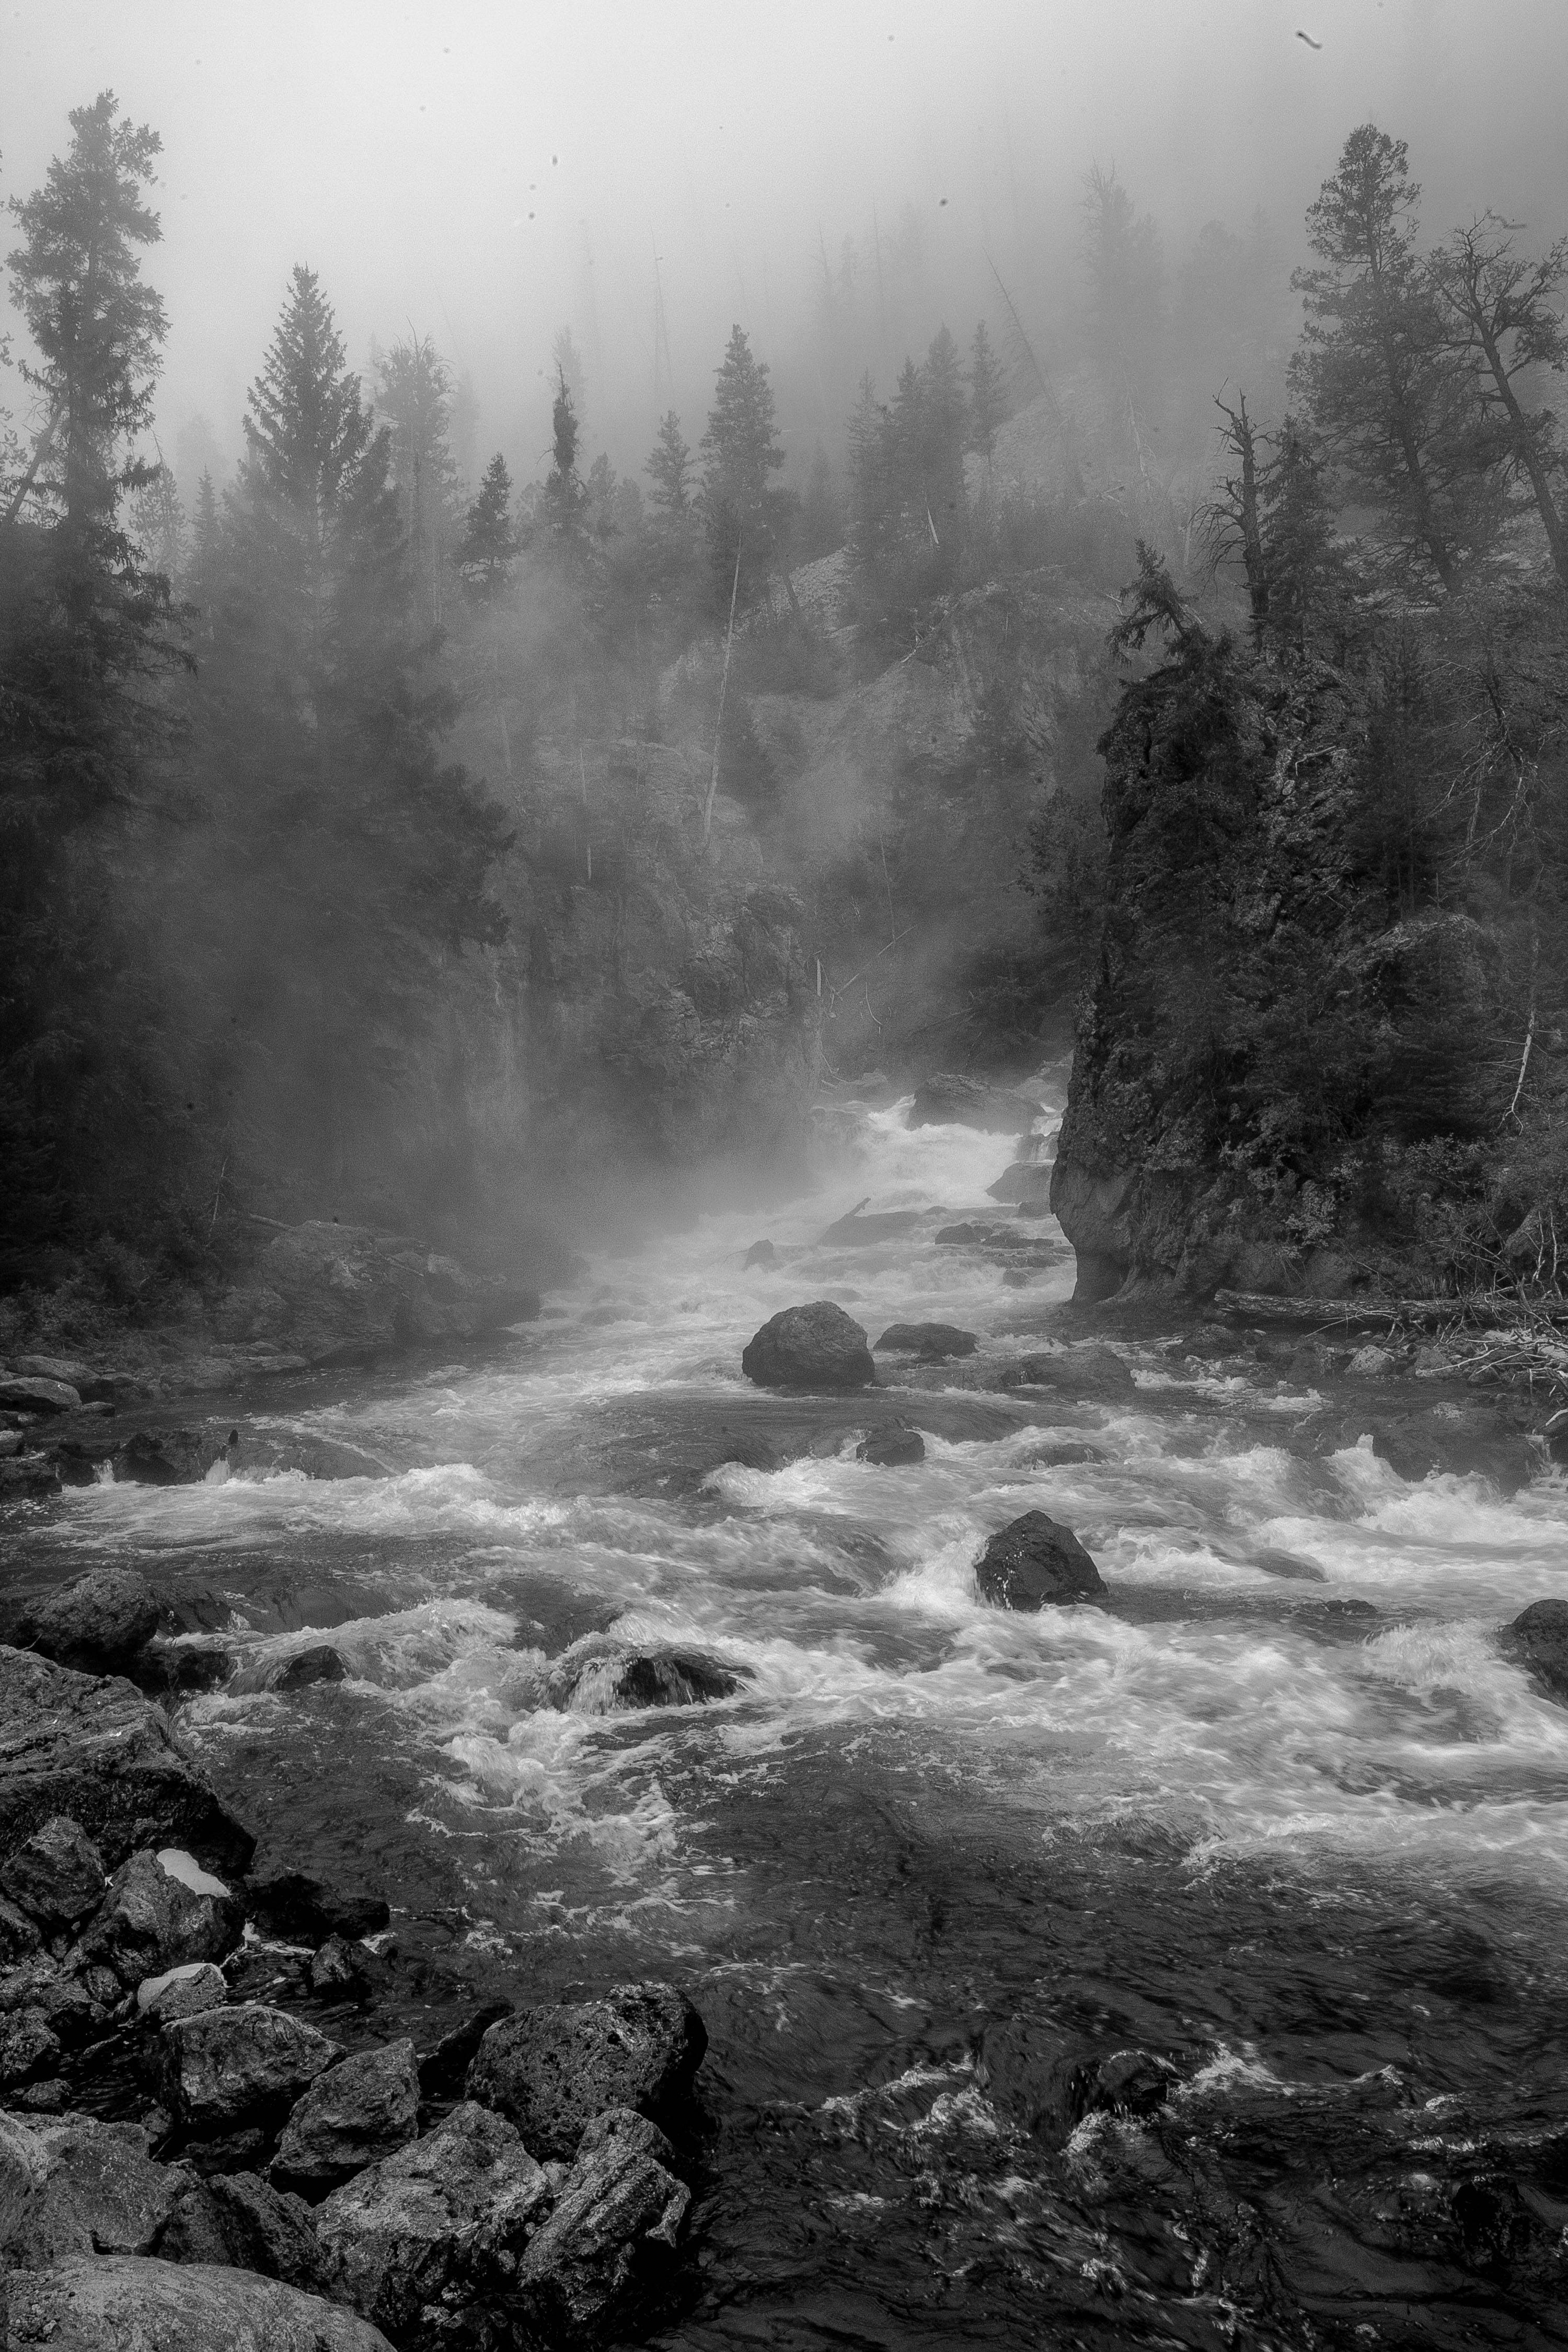 """Misty Morning"" by Mike Smith is a black and white photograph of one of the many waterfalls in Yellowstone National Park and will be on display throughout the month of November 2013 at Gallery 200 in West Chicago as part of his exhibit ""Our National Parks."""